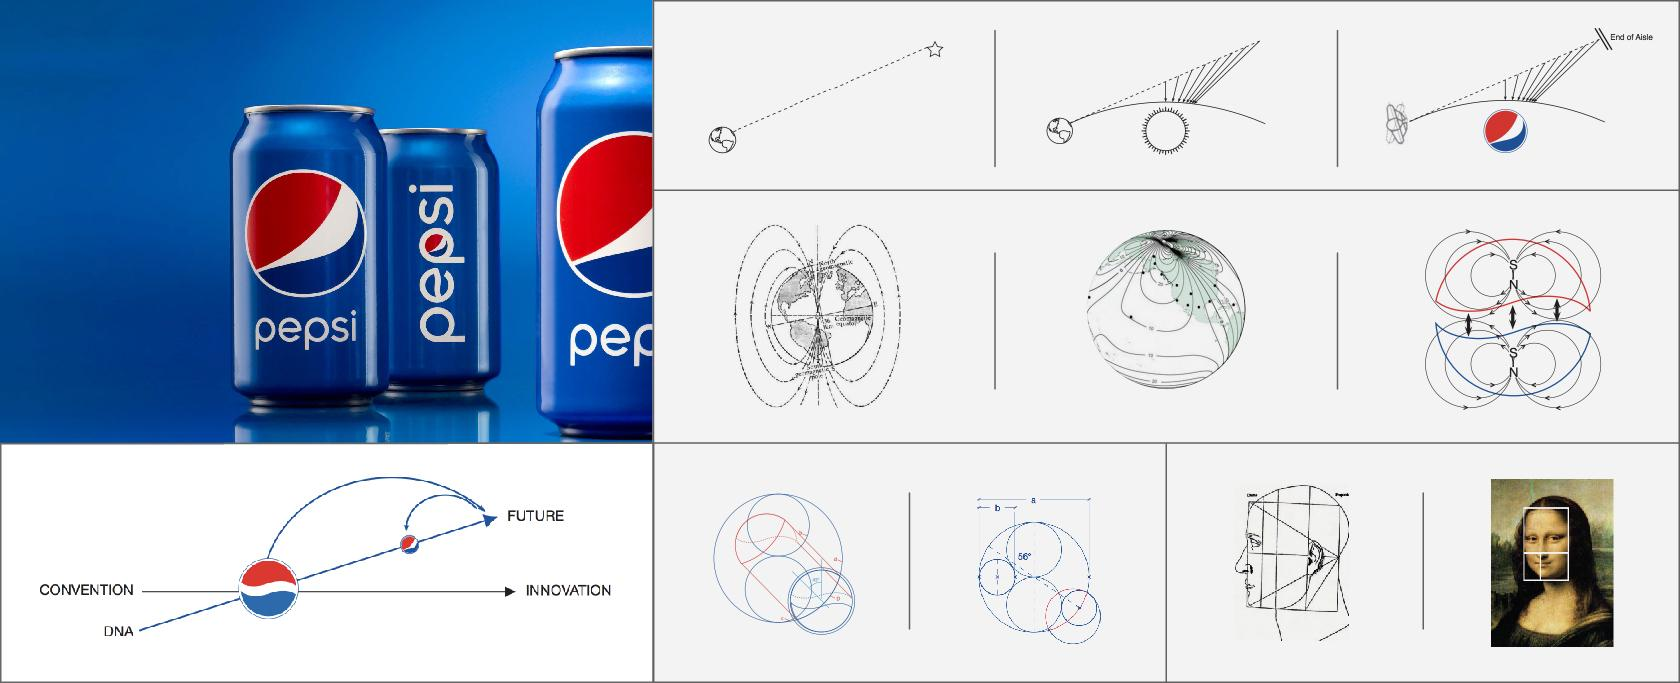 Pepsi's rebranding process was overly complex.